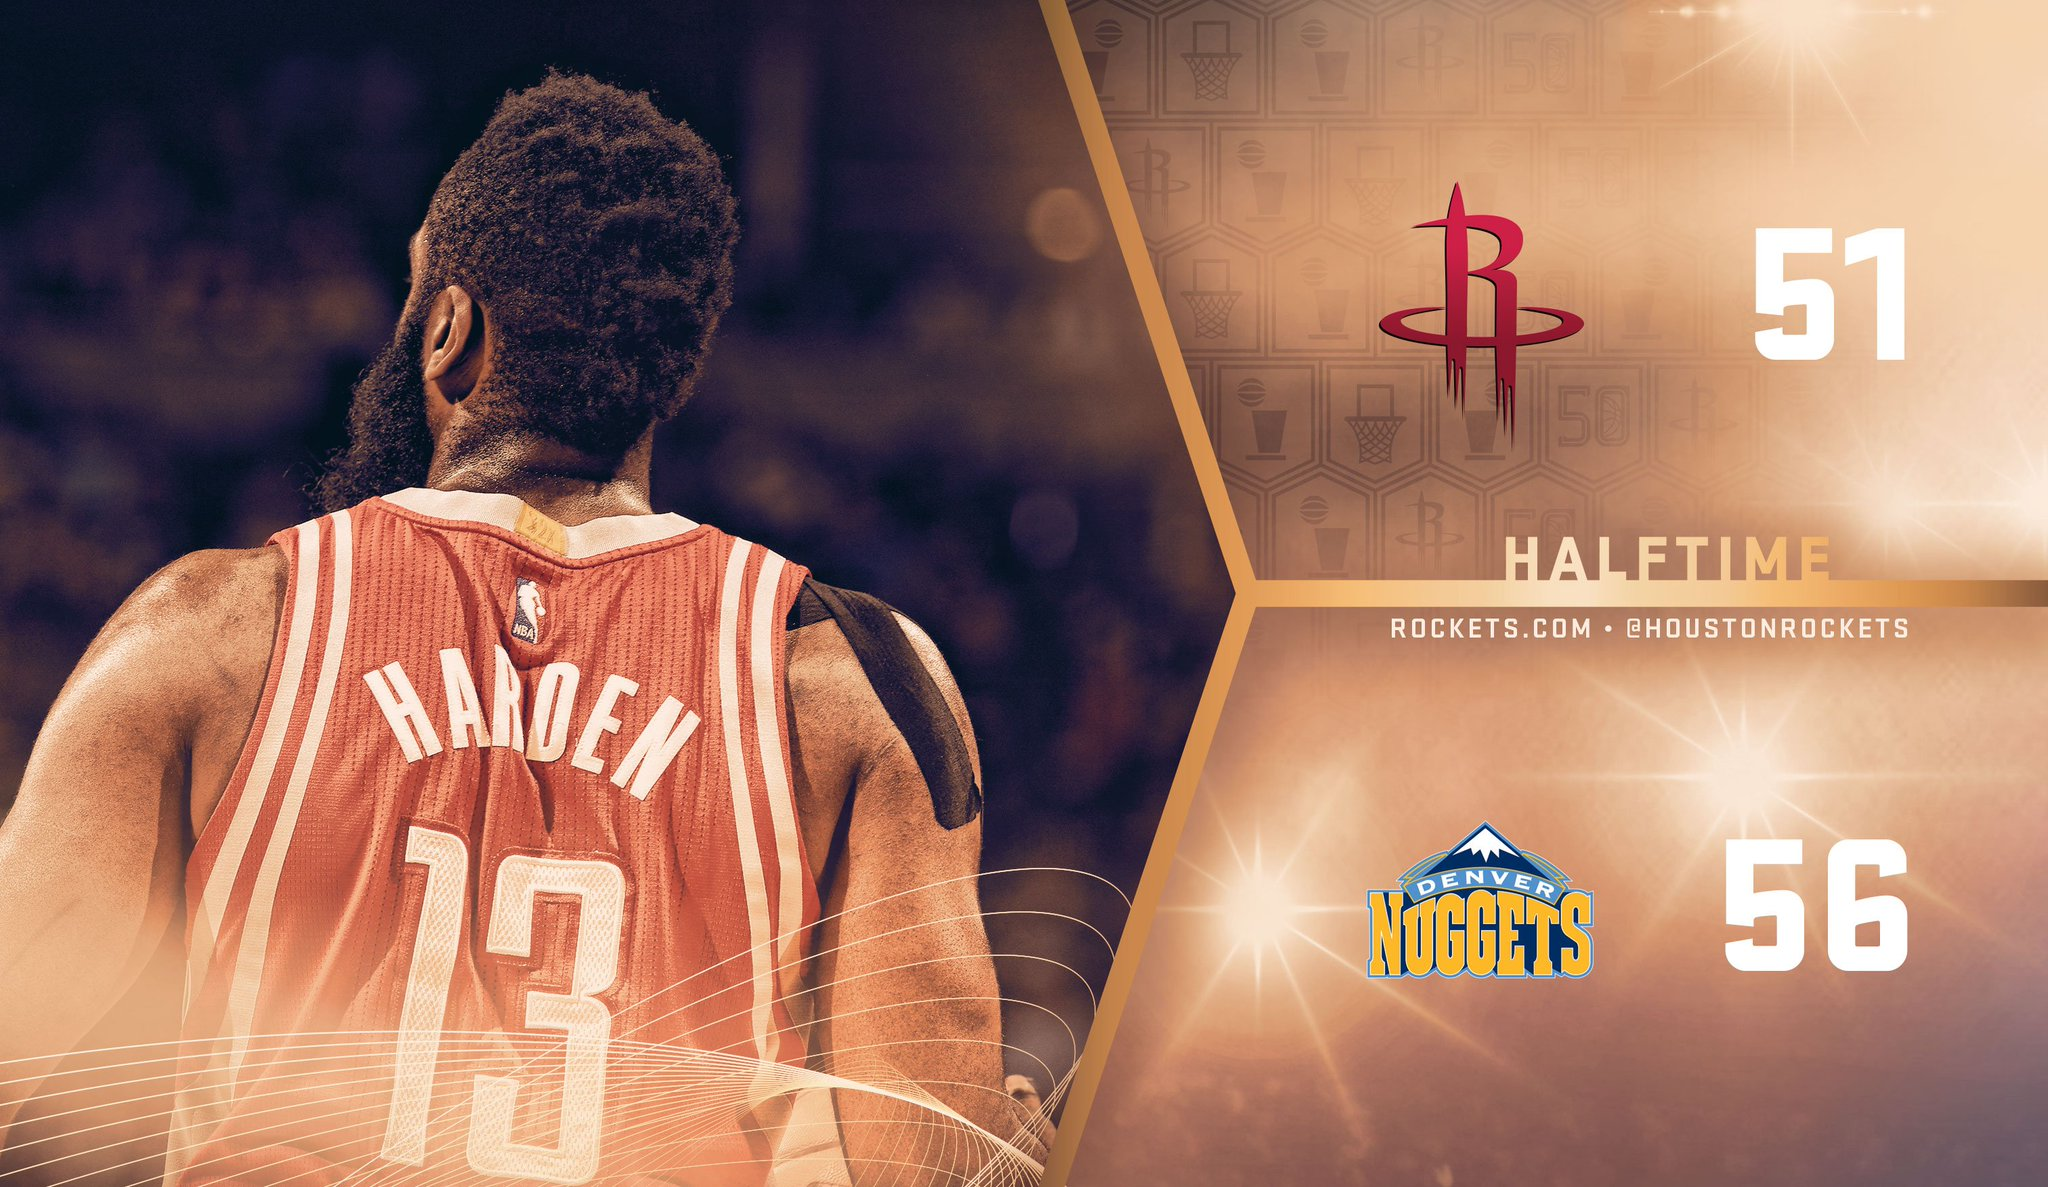 Halftime in Denver.   @JHarden13 leading the way with 13pts/7ast https://t.co/9Kz0g70ryv